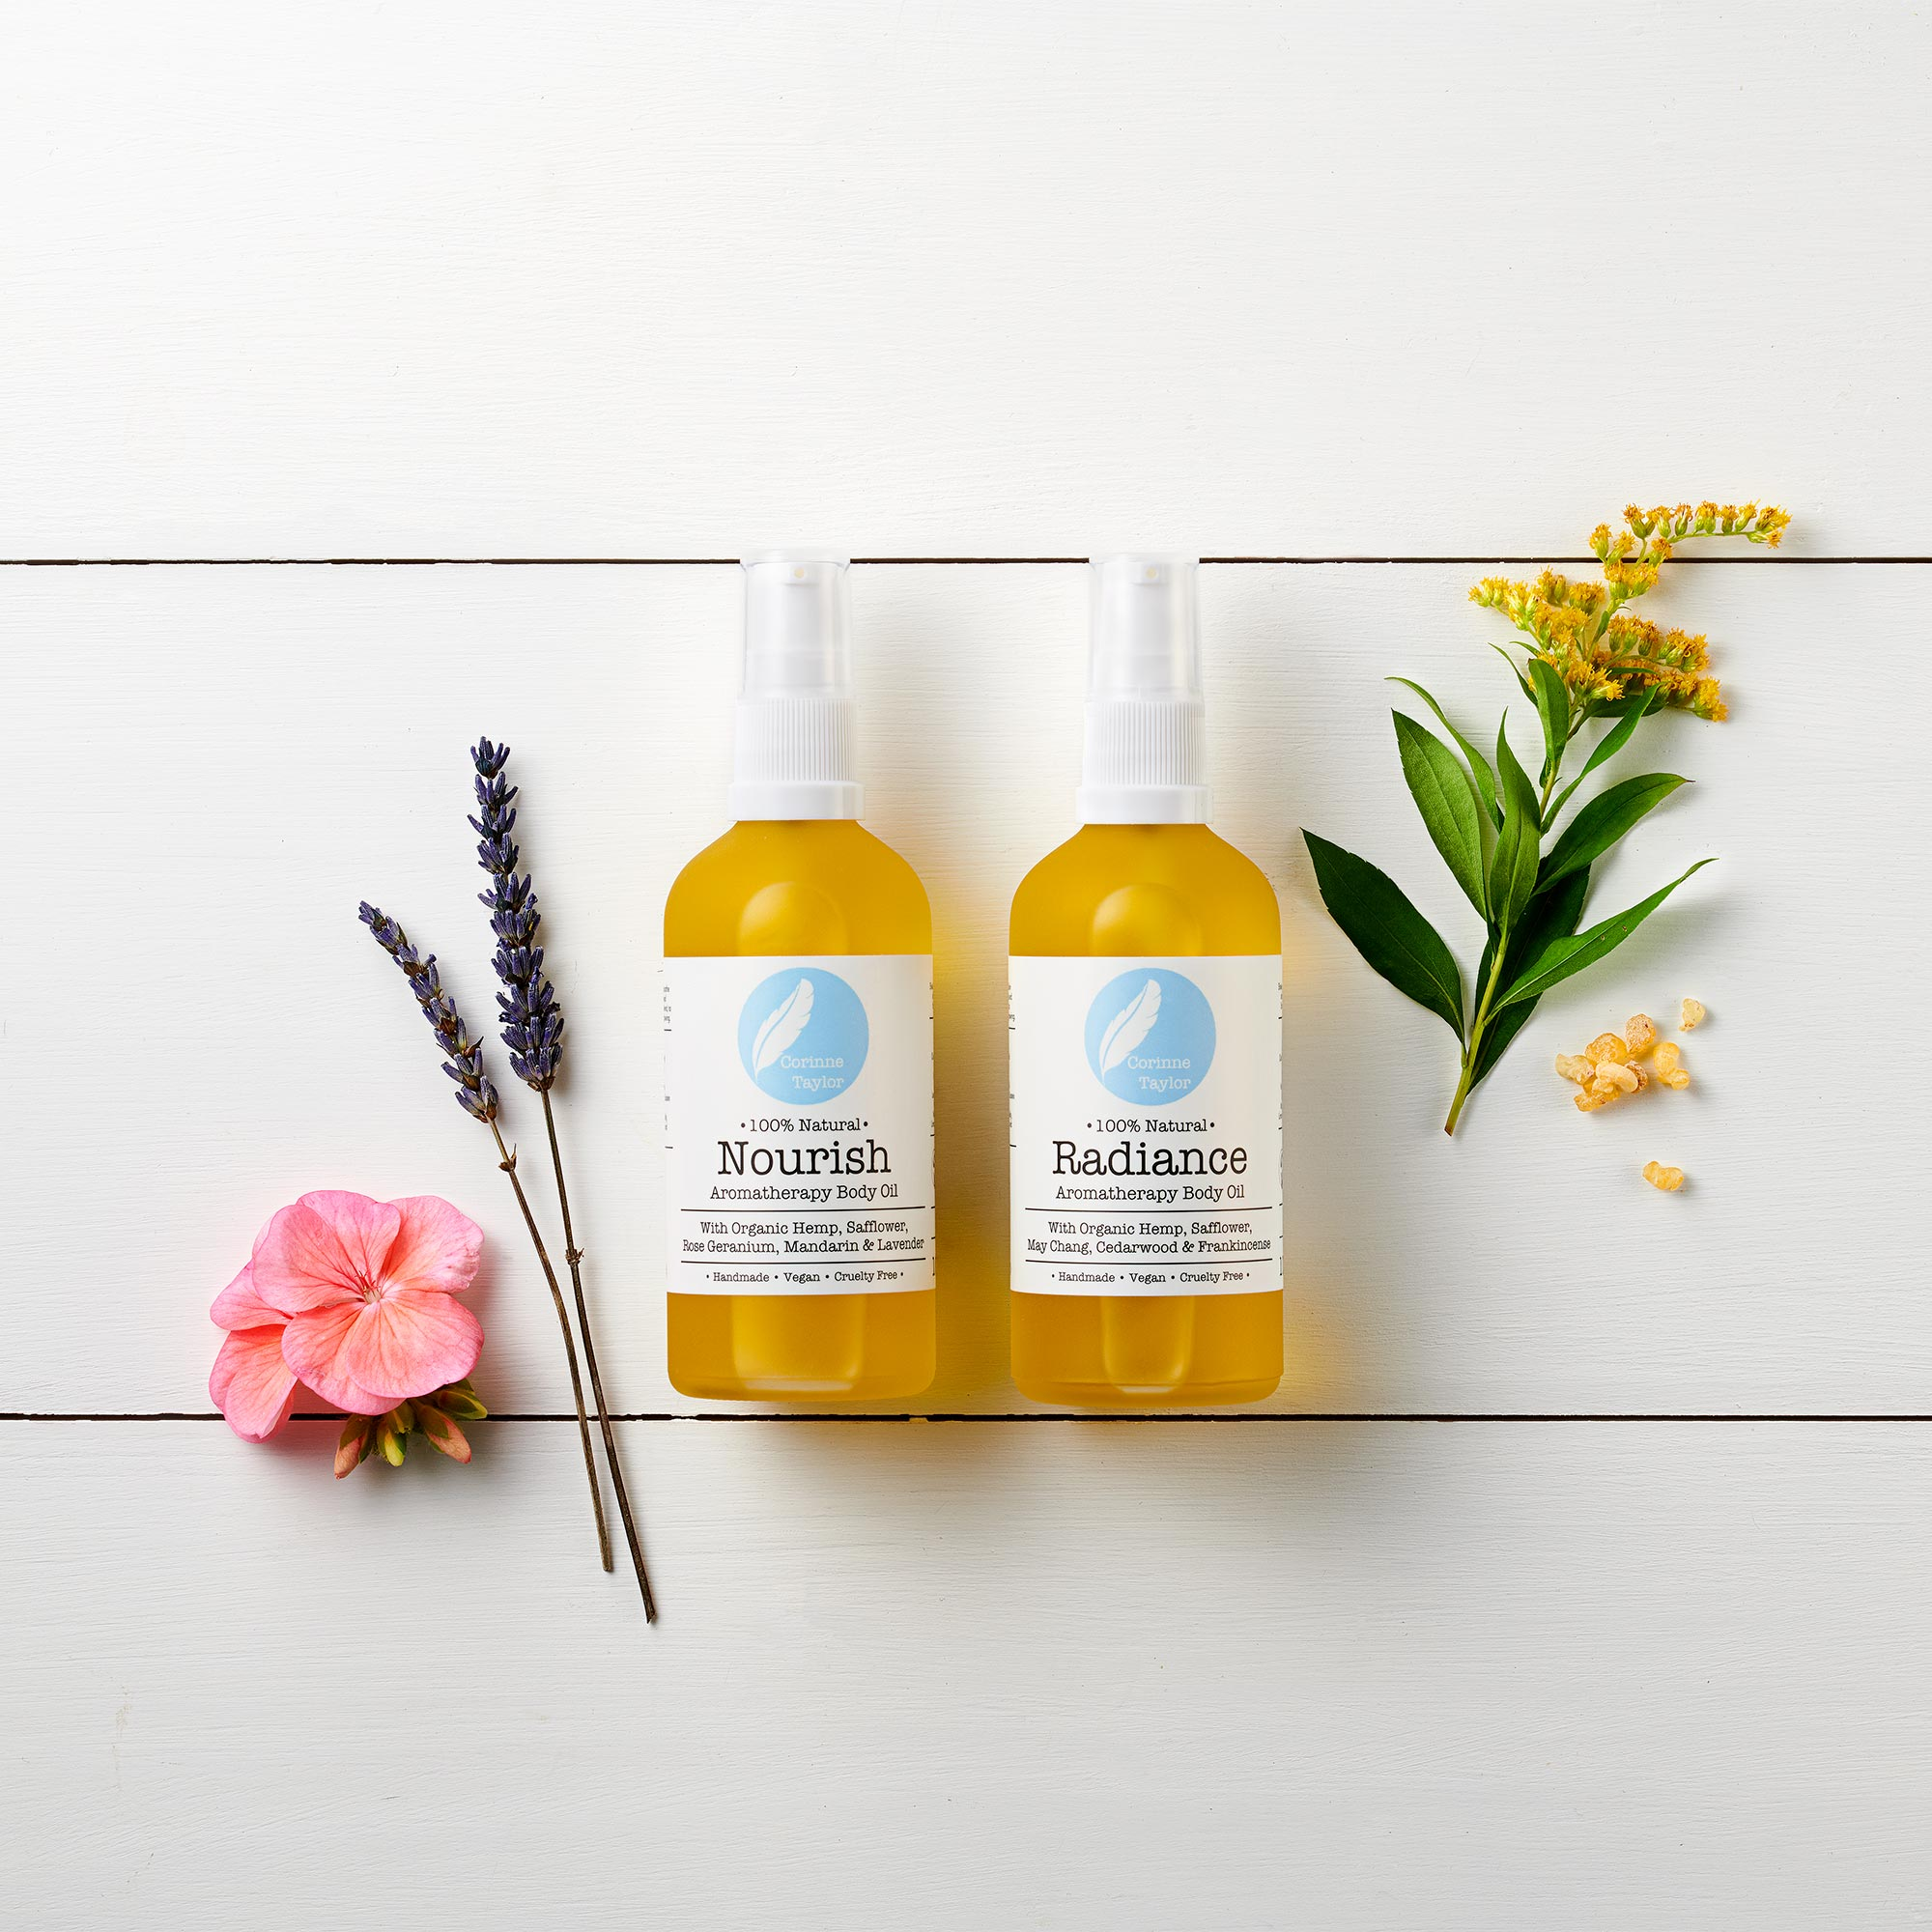 100% natural, vegan, cruelty free and organic body oils by Corinne Taylor.